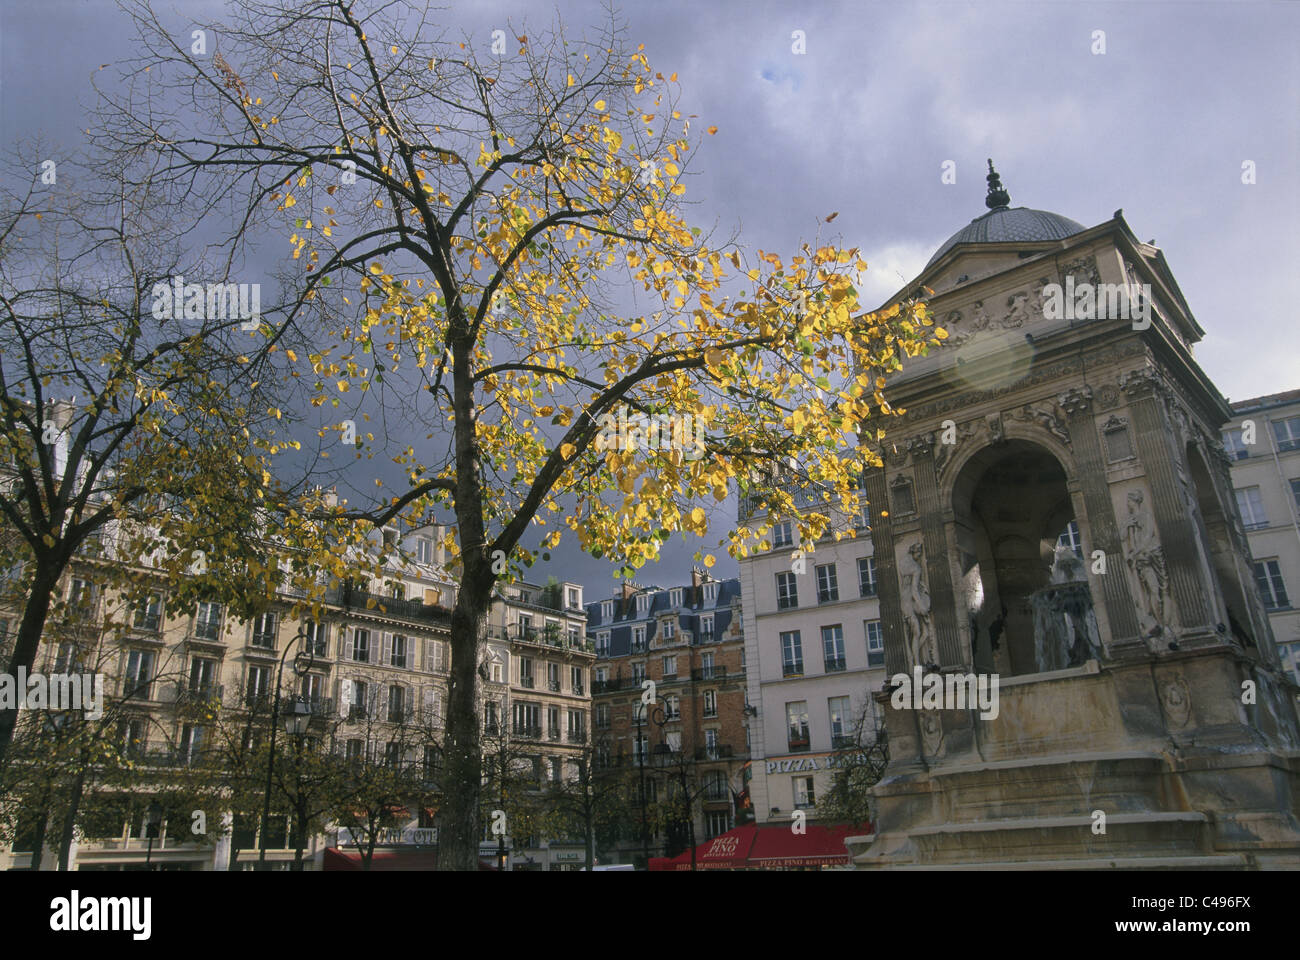 Photograph of an old building in Paris - Stock Image